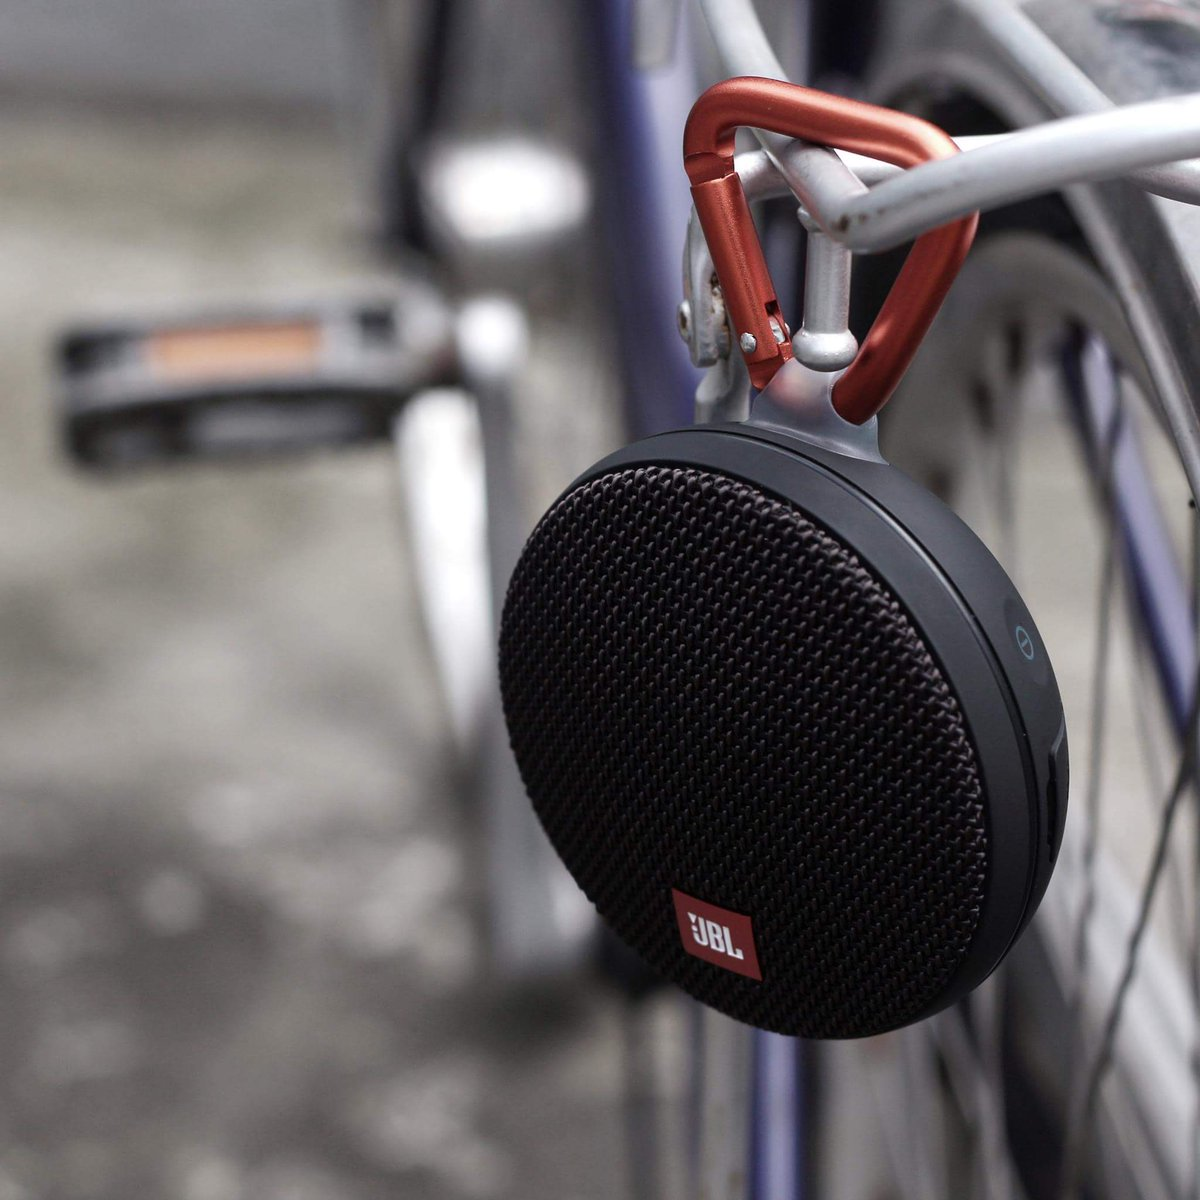 Power Mac Center On Twitter A Jbl Clip 2 Portable Bluetooth Charge 3 Speaker Waterproof Is Yours When You Buy